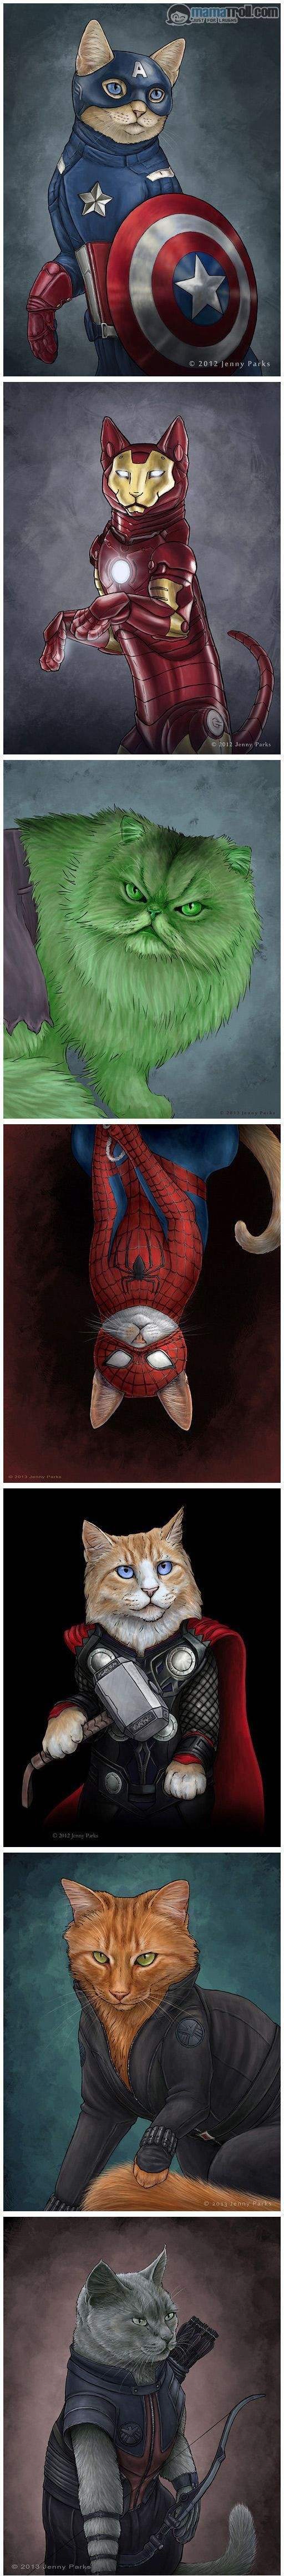 If the Avengers and Spider man were cats